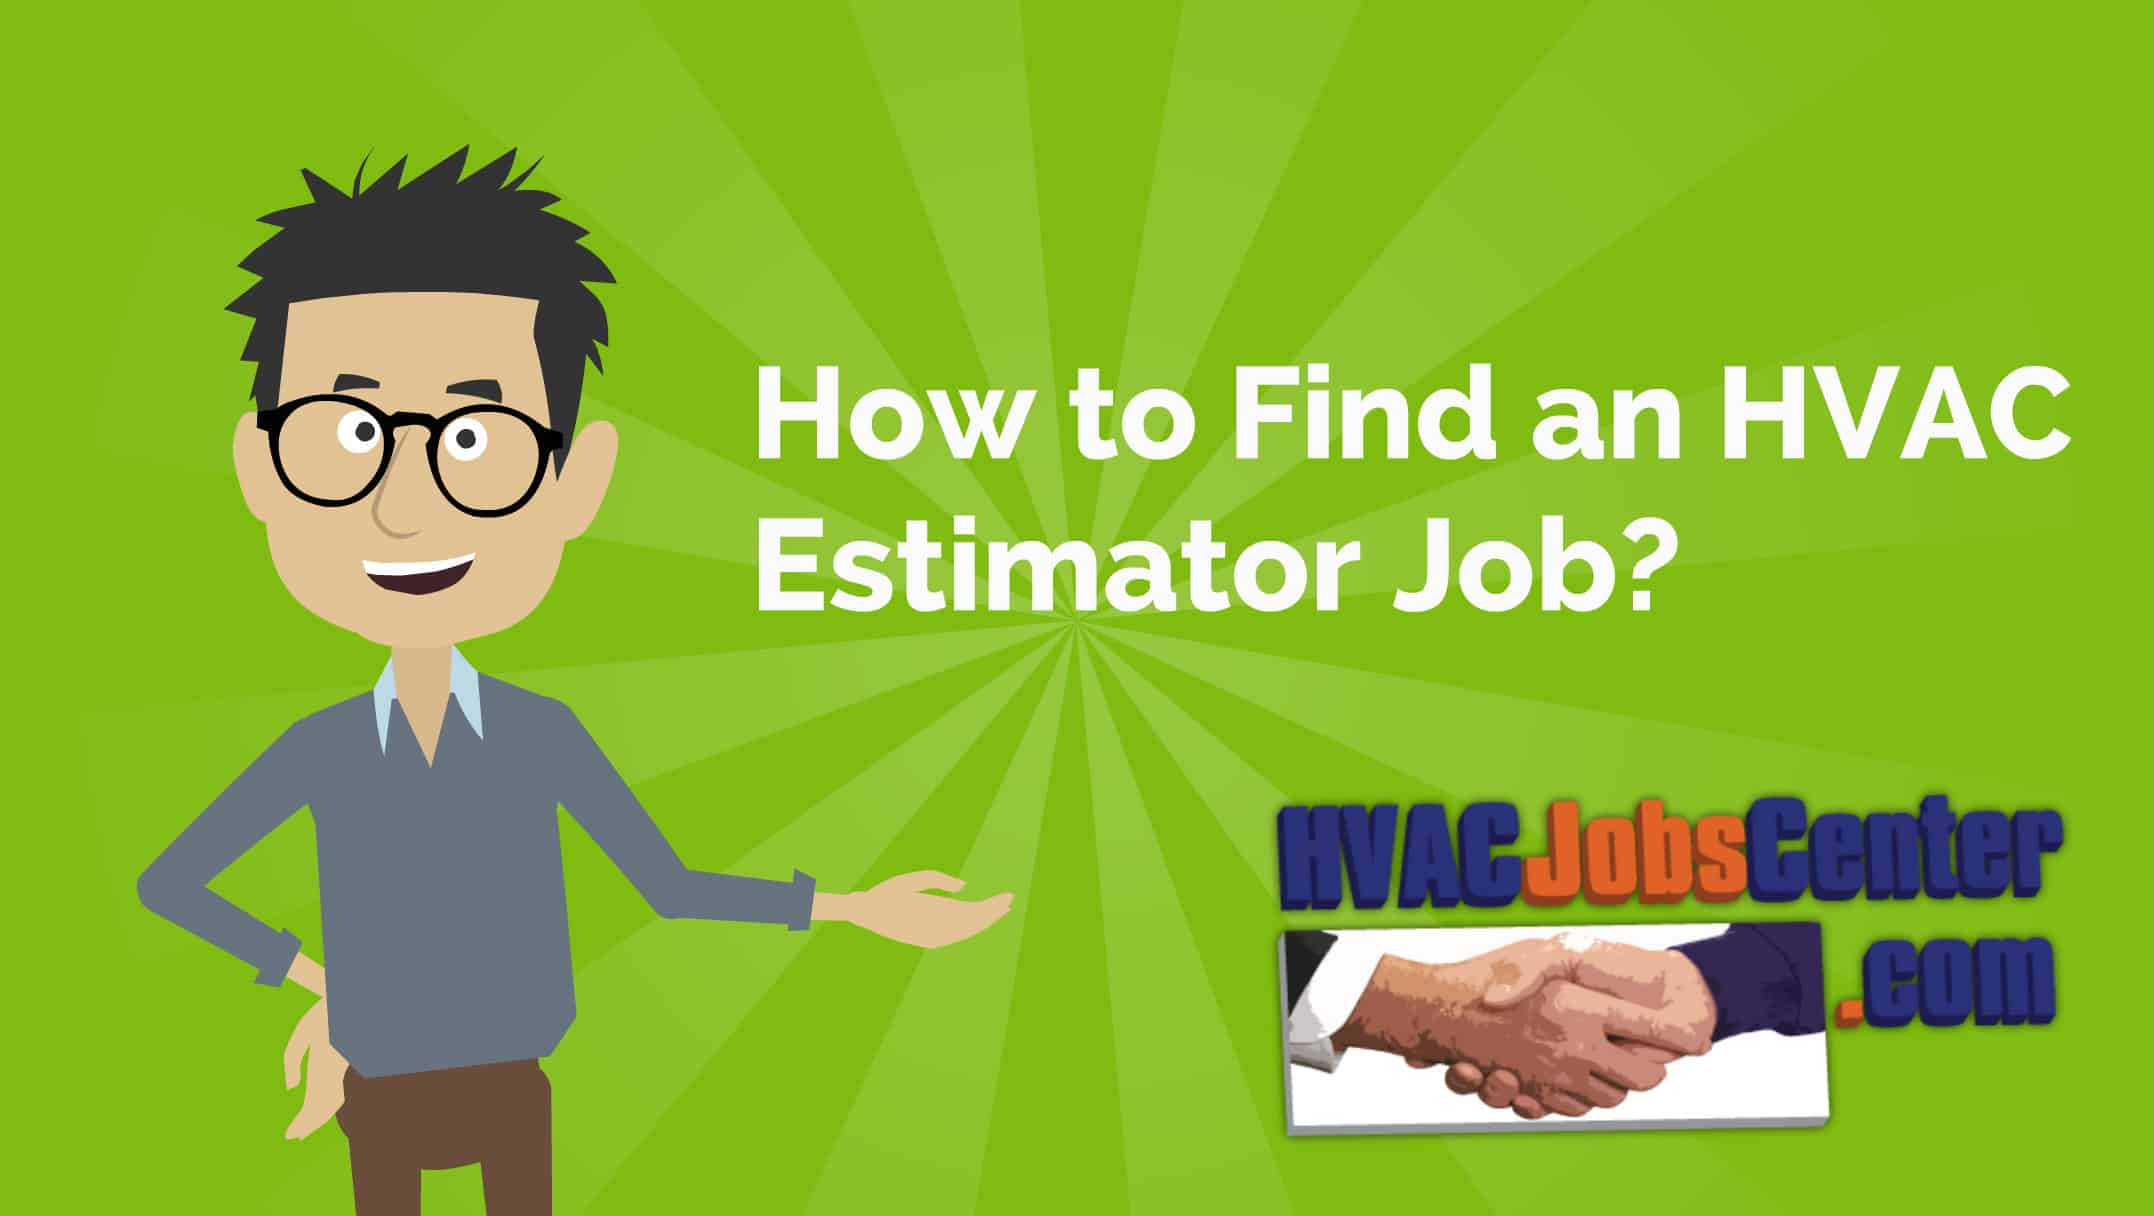 hvac estimators your new job is here hvac jobs center. Resume Example. Resume CV Cover Letter